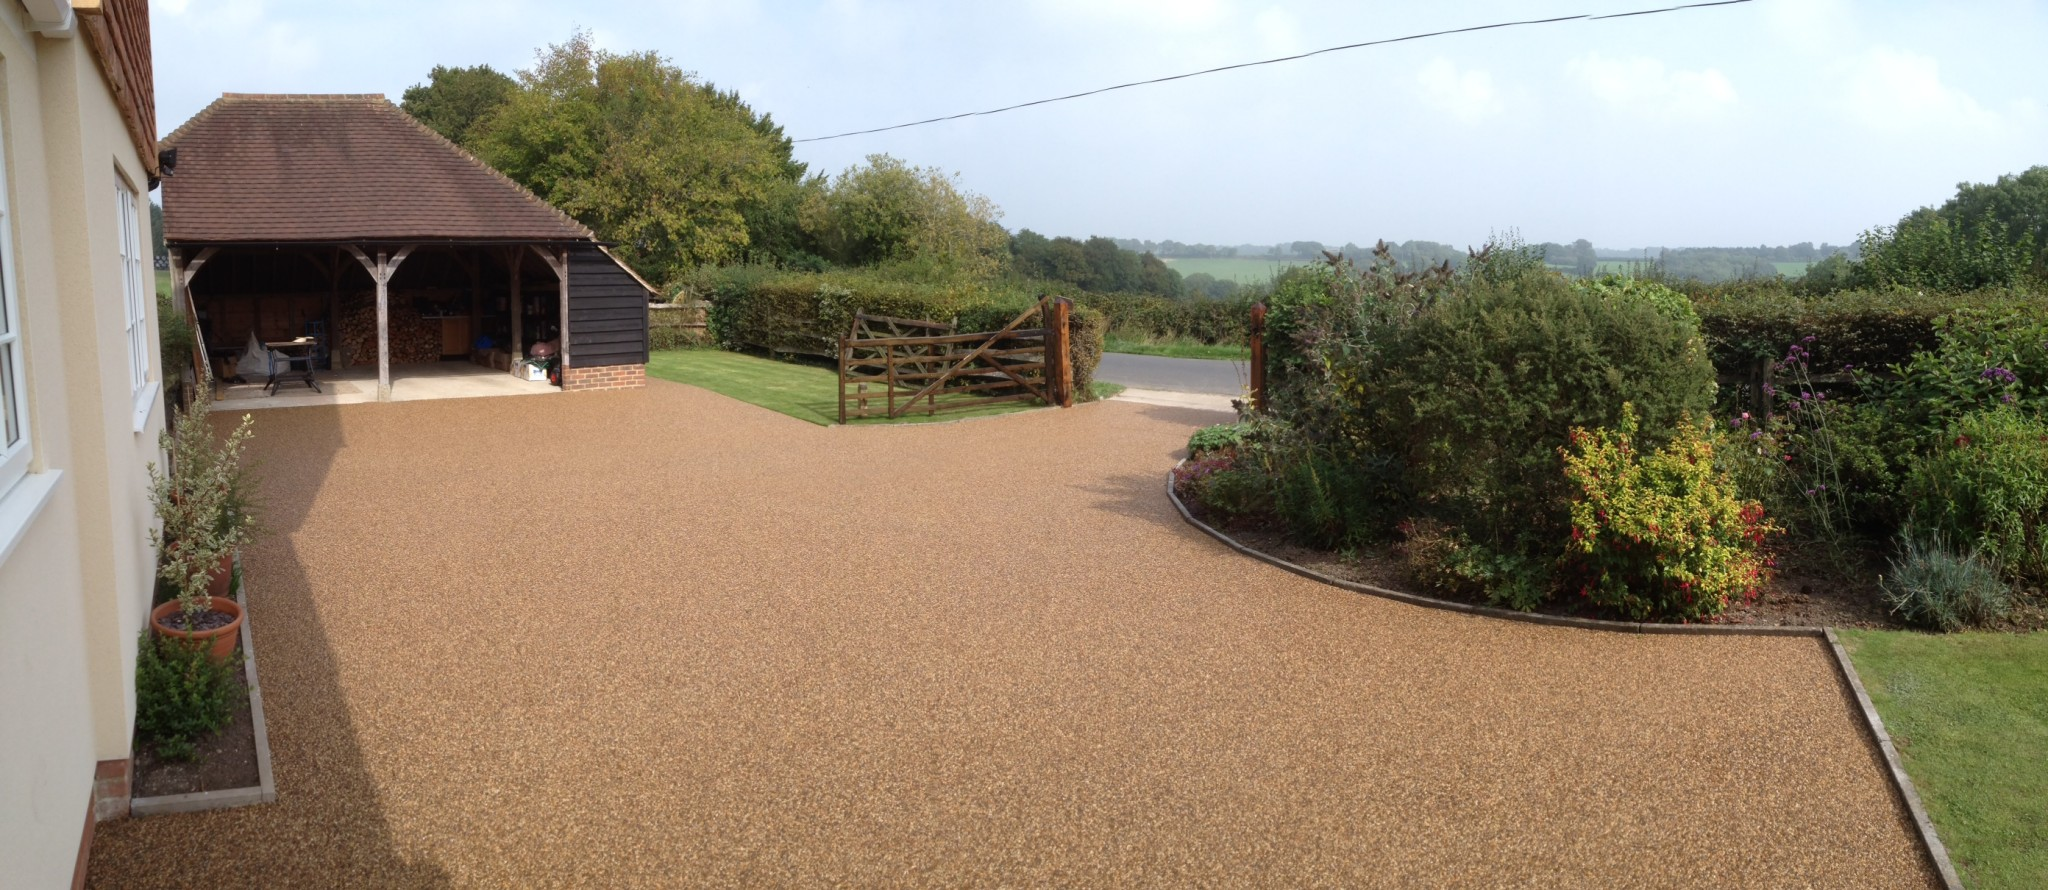 resin driveways in kent commercial and domestic resin drives. Black Bedroom Furniture Sets. Home Design Ideas